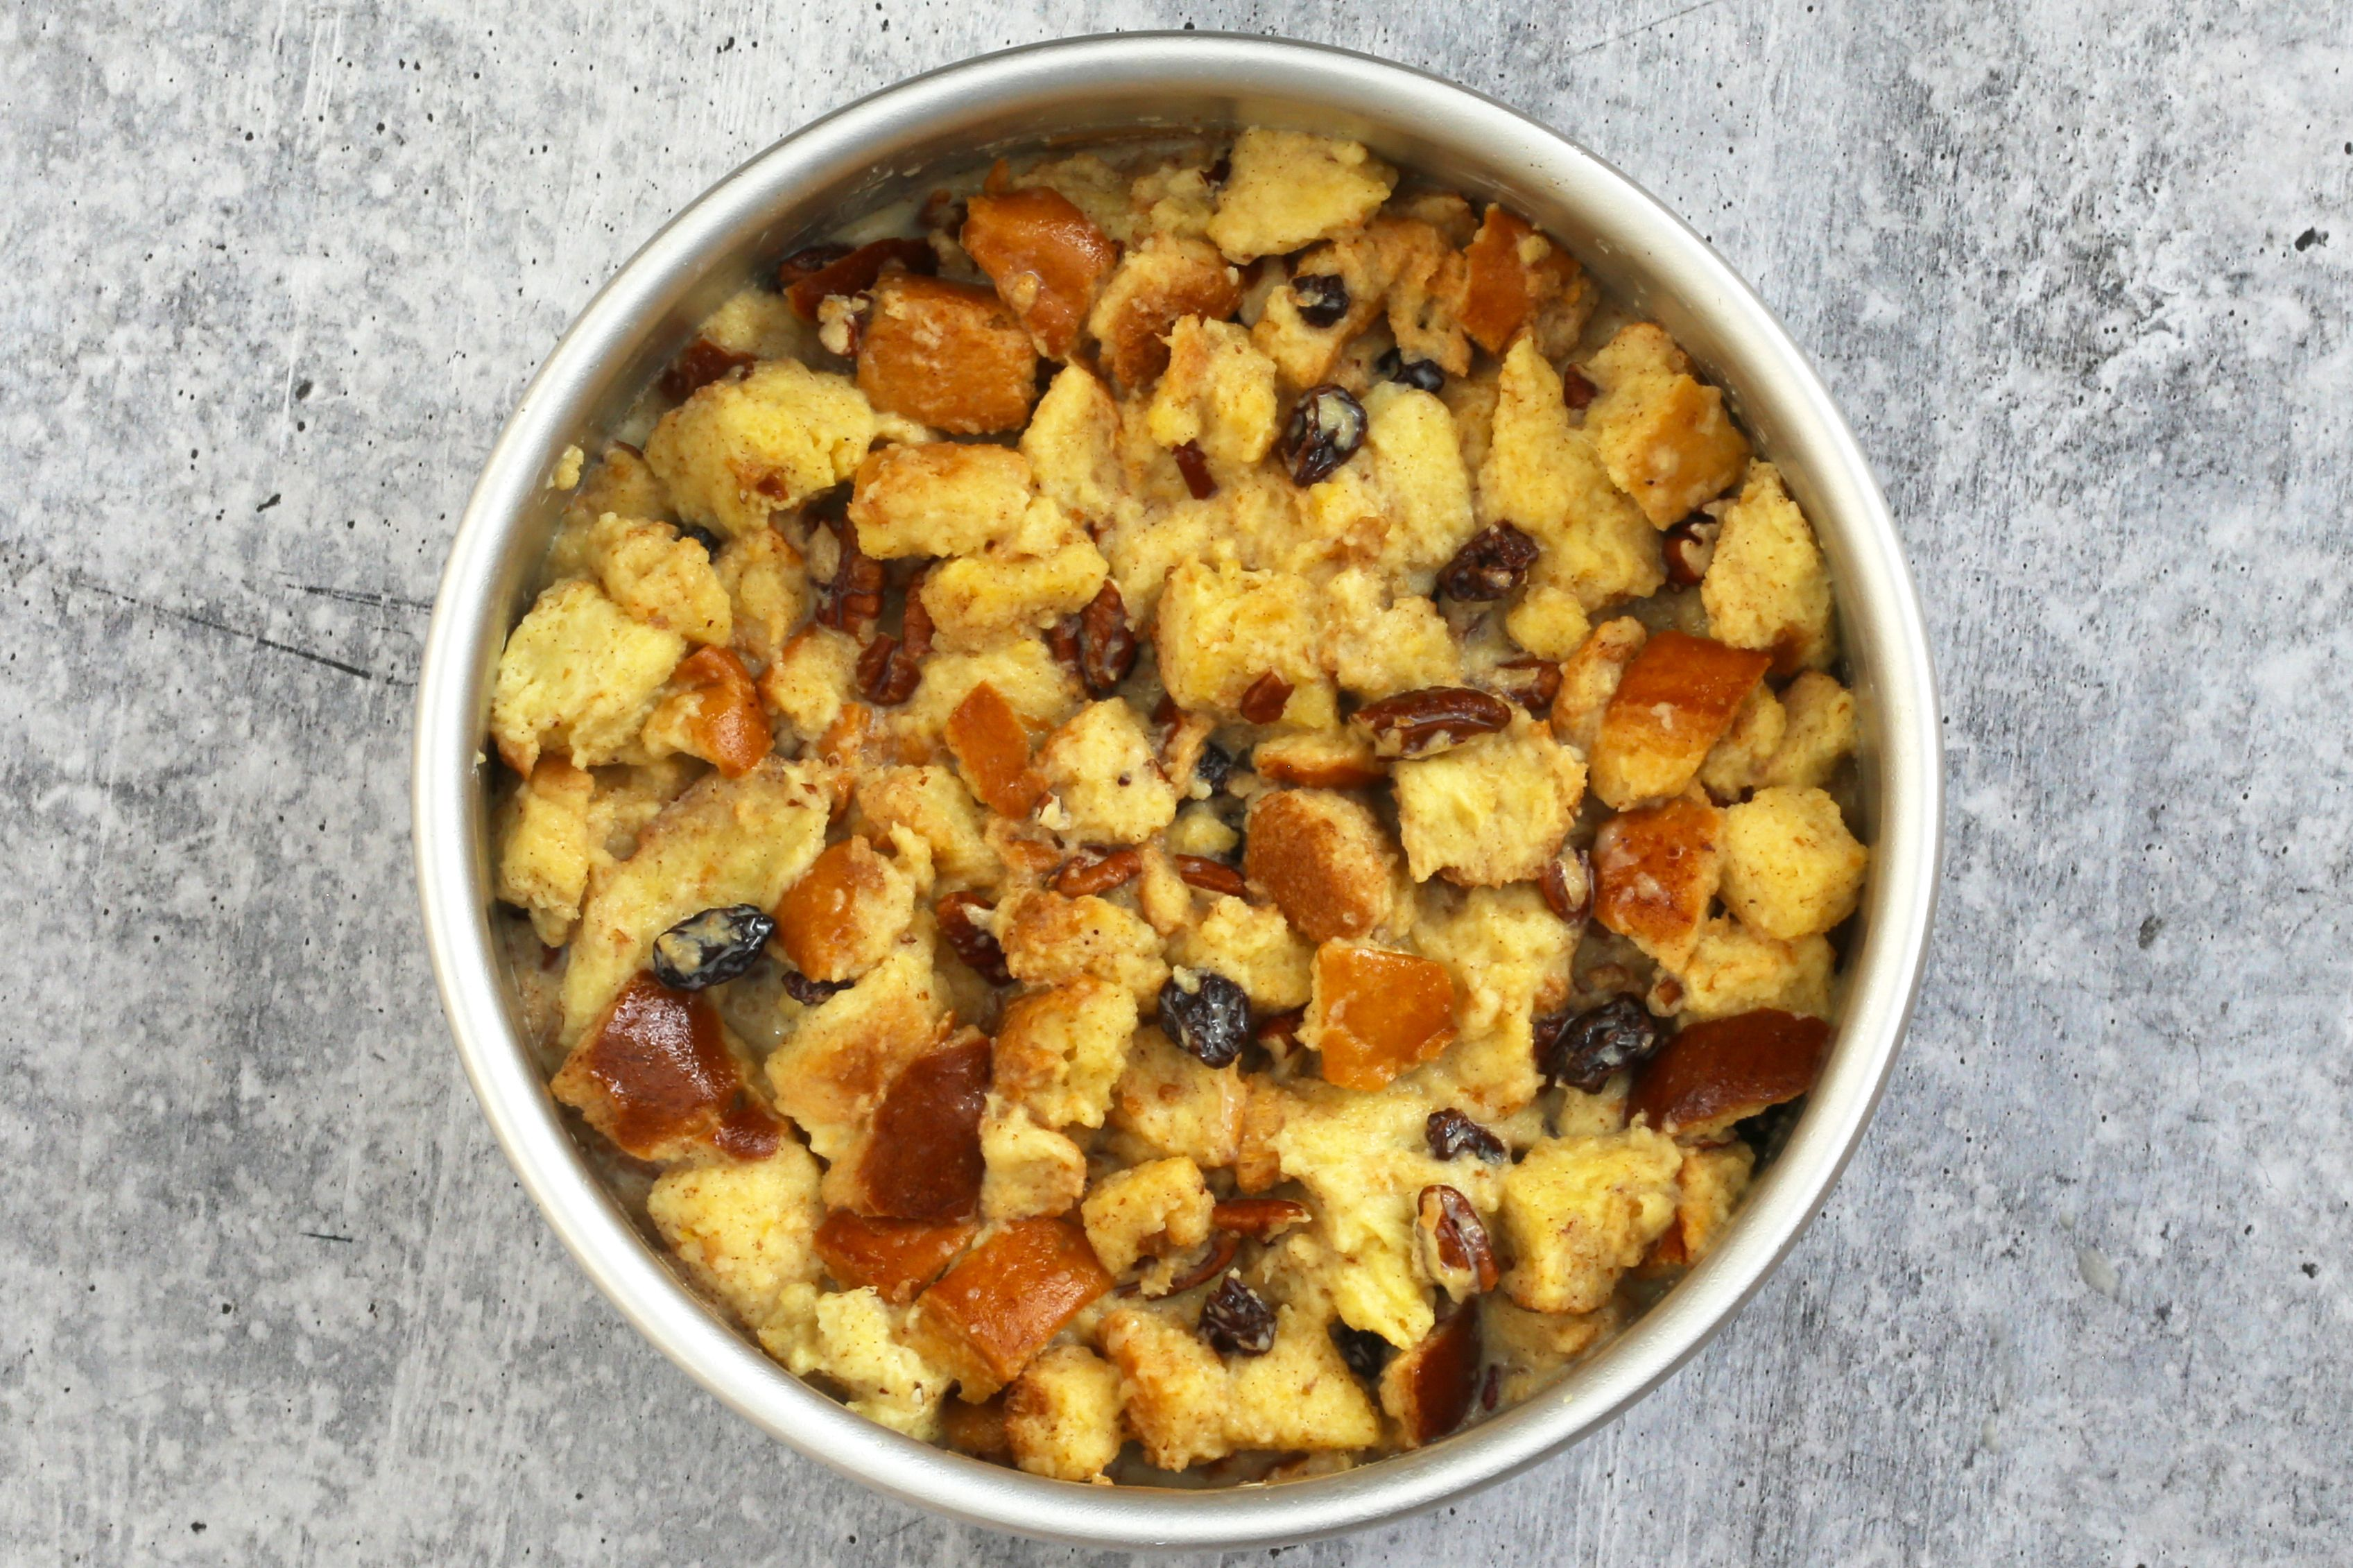 Instant Pot bread pudding cooked.